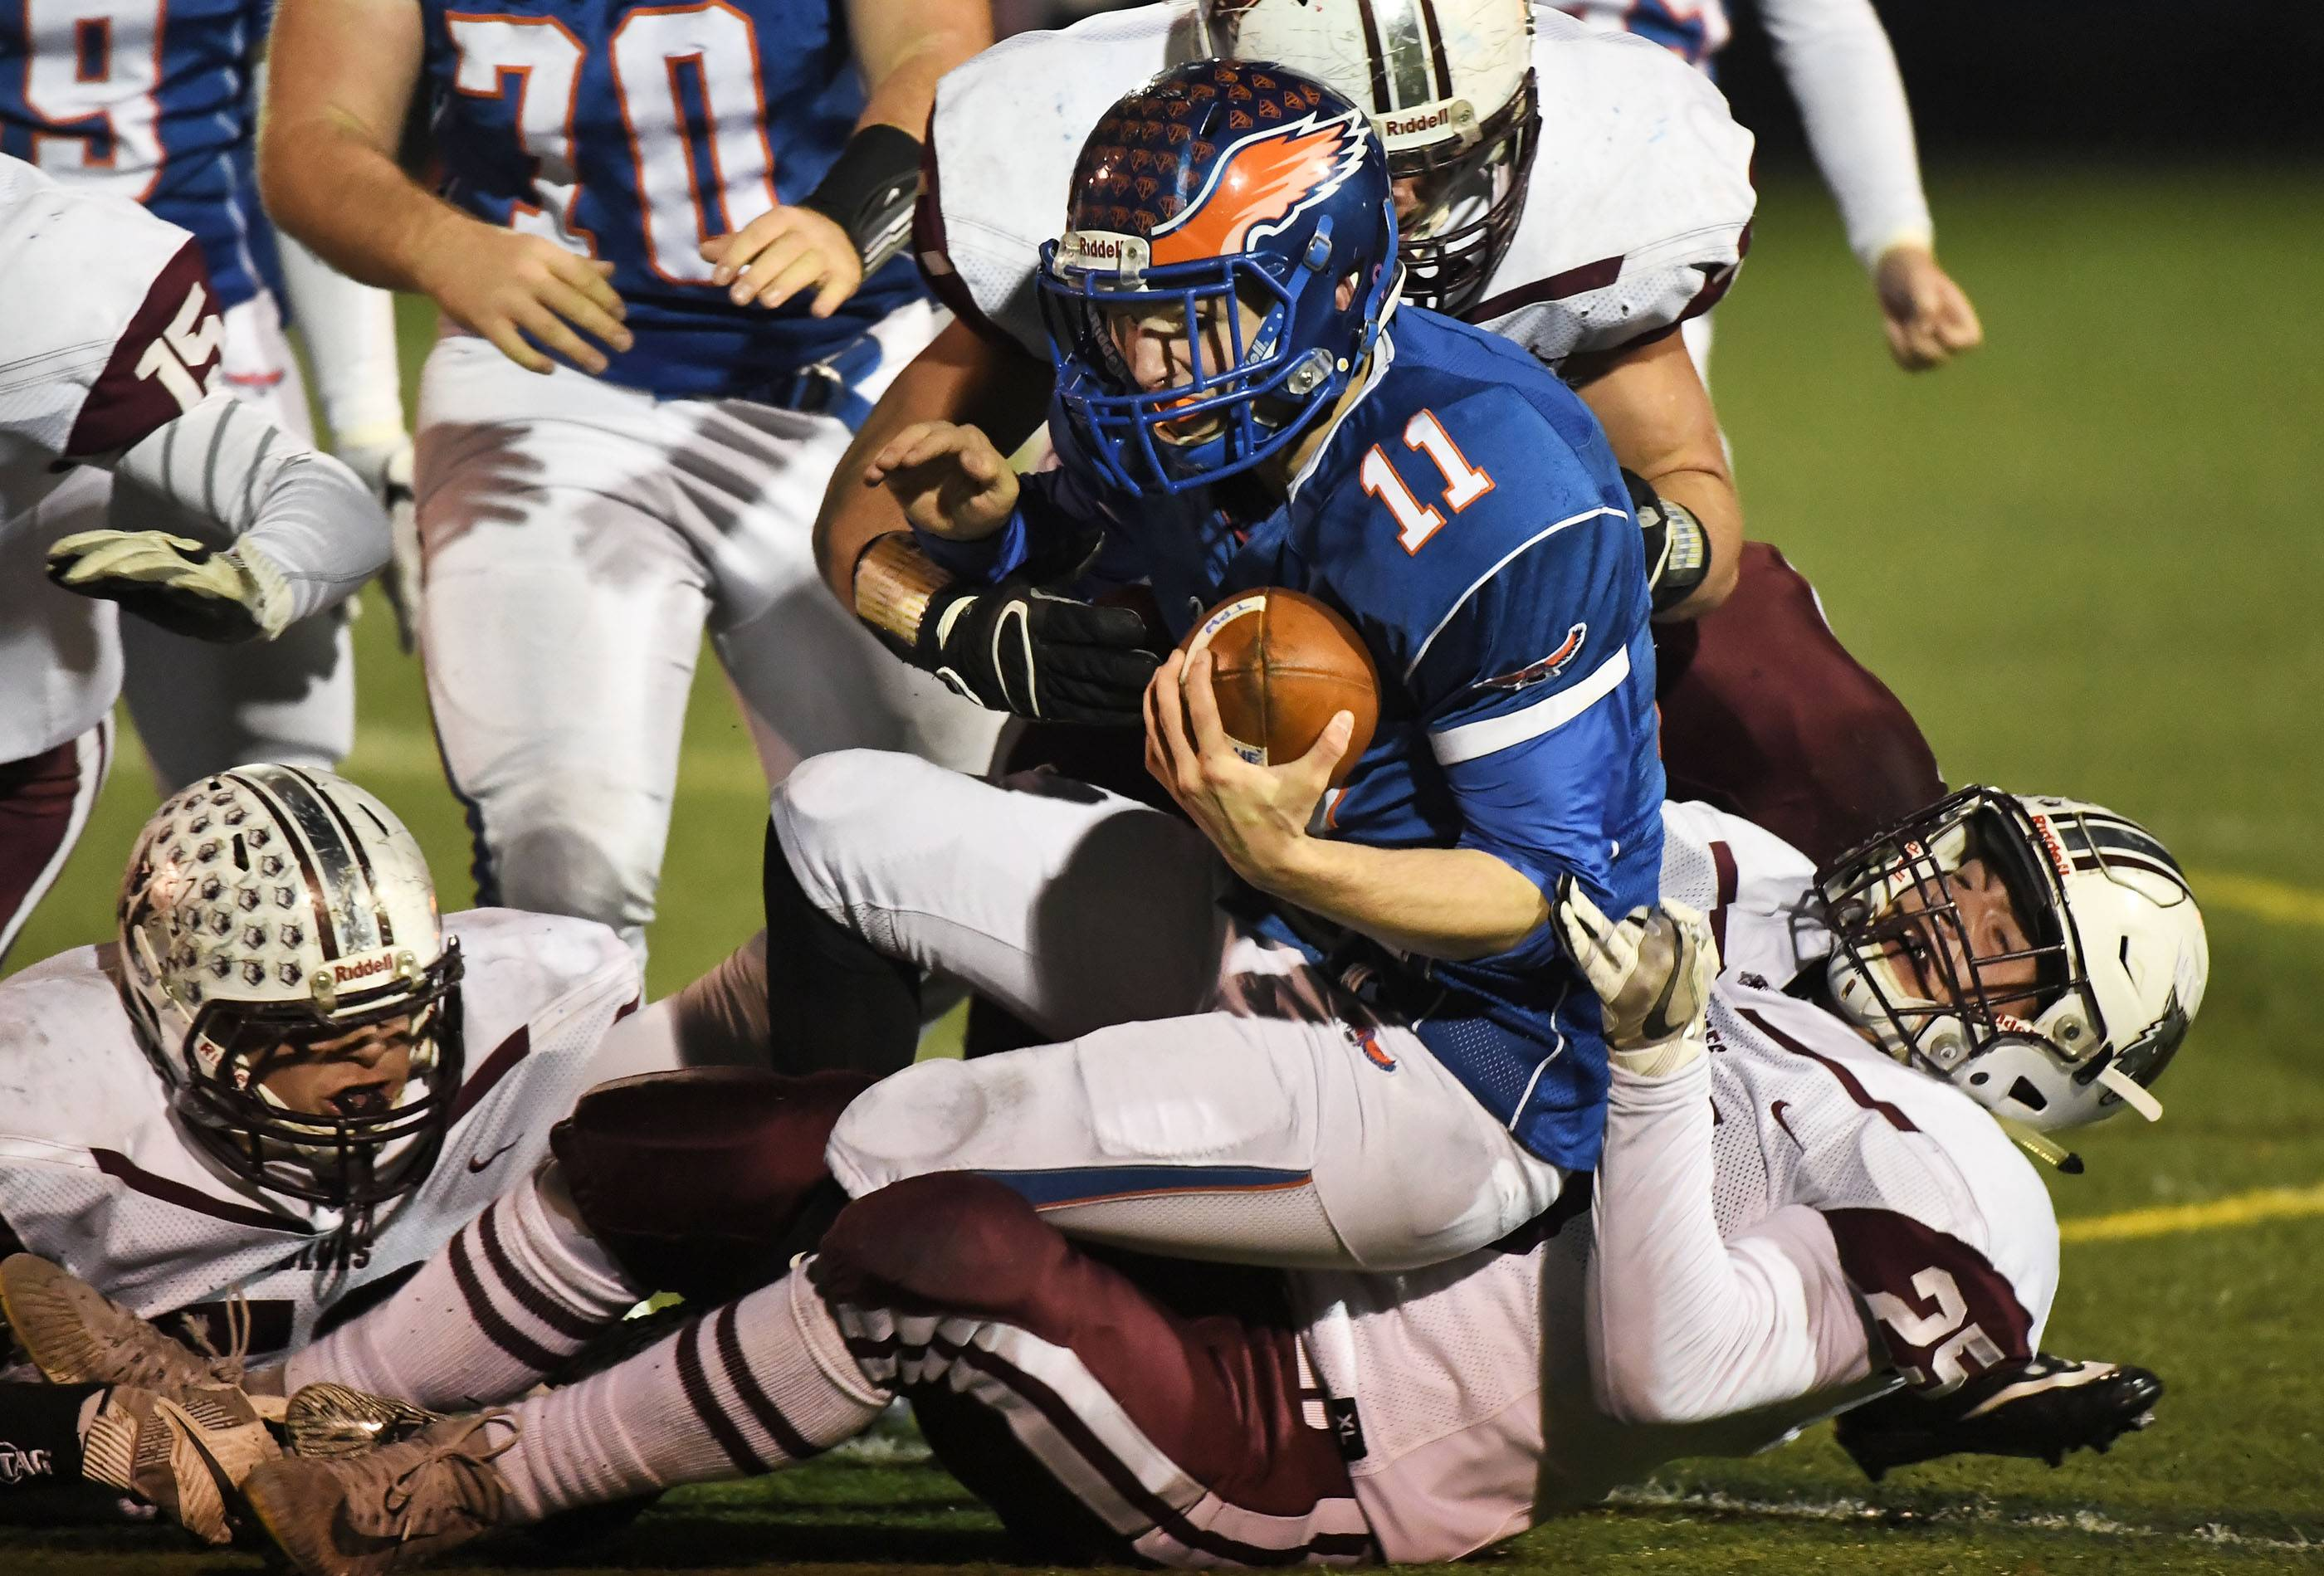 Hoffman Estates' Austin Coalson is sacked by Prairie Ridge's Jacob Ommen late in Saturday's Class 6A state semifinals at Hoffman Estates.